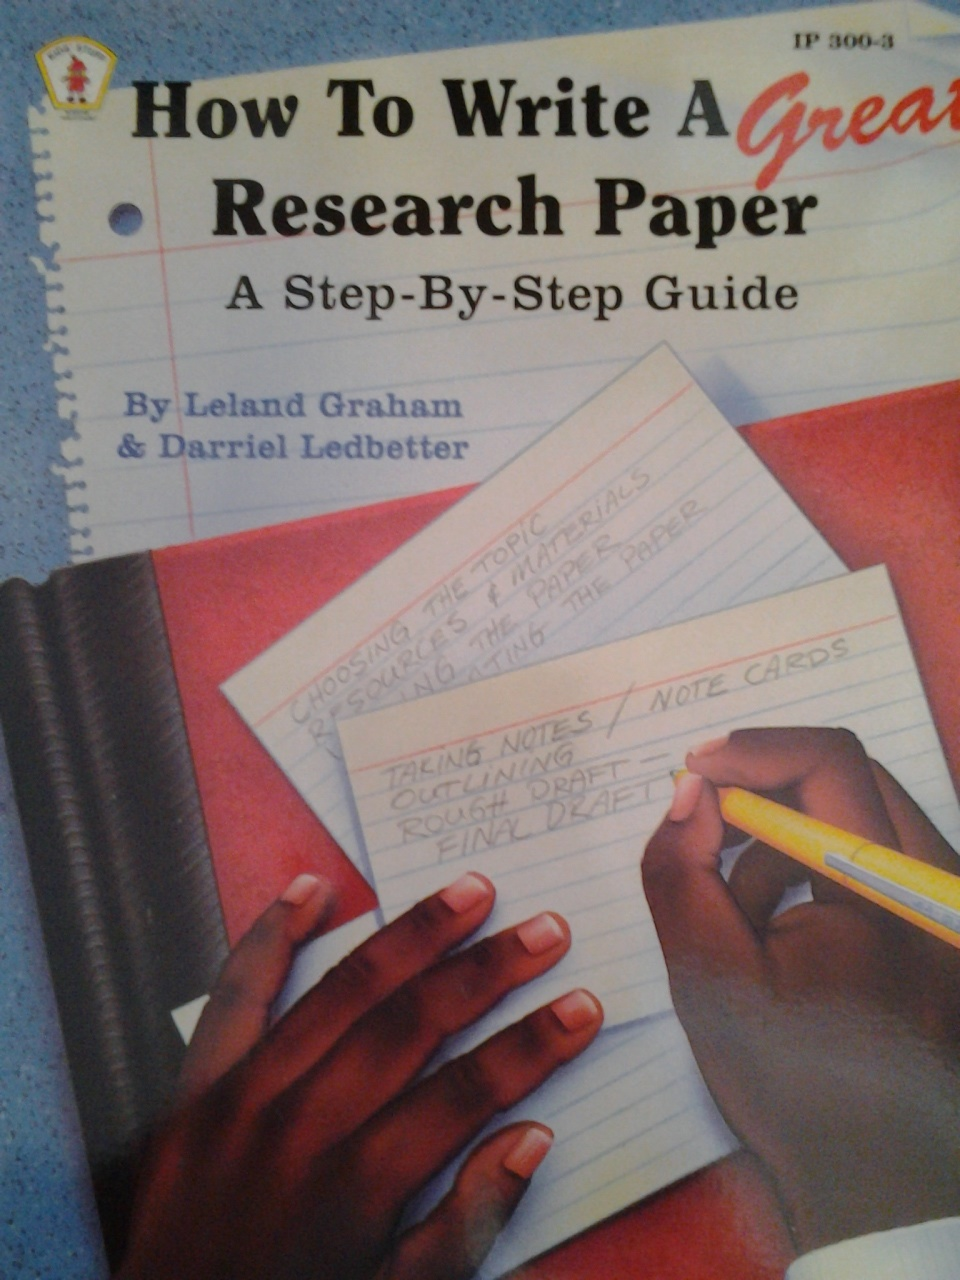 004 Img 20171008 144602 How To Write Great Research Paper Best A Book Good On Full